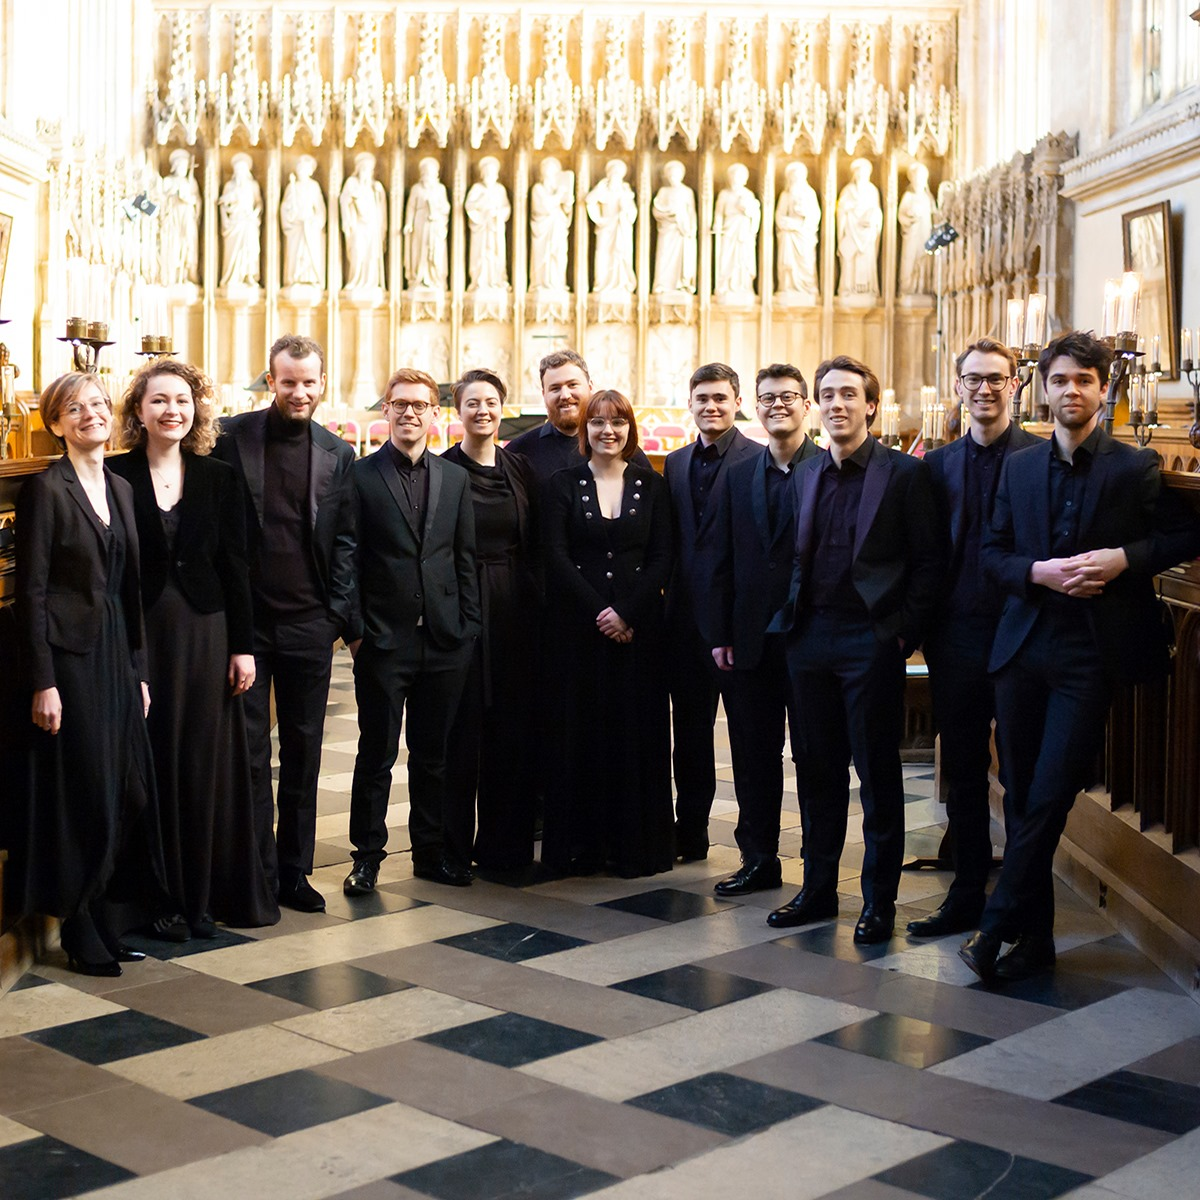 Oxford Bach Soloists Inaugural Choral Scholar Cohort, 2018-2019. New College Chapel, Oxford.